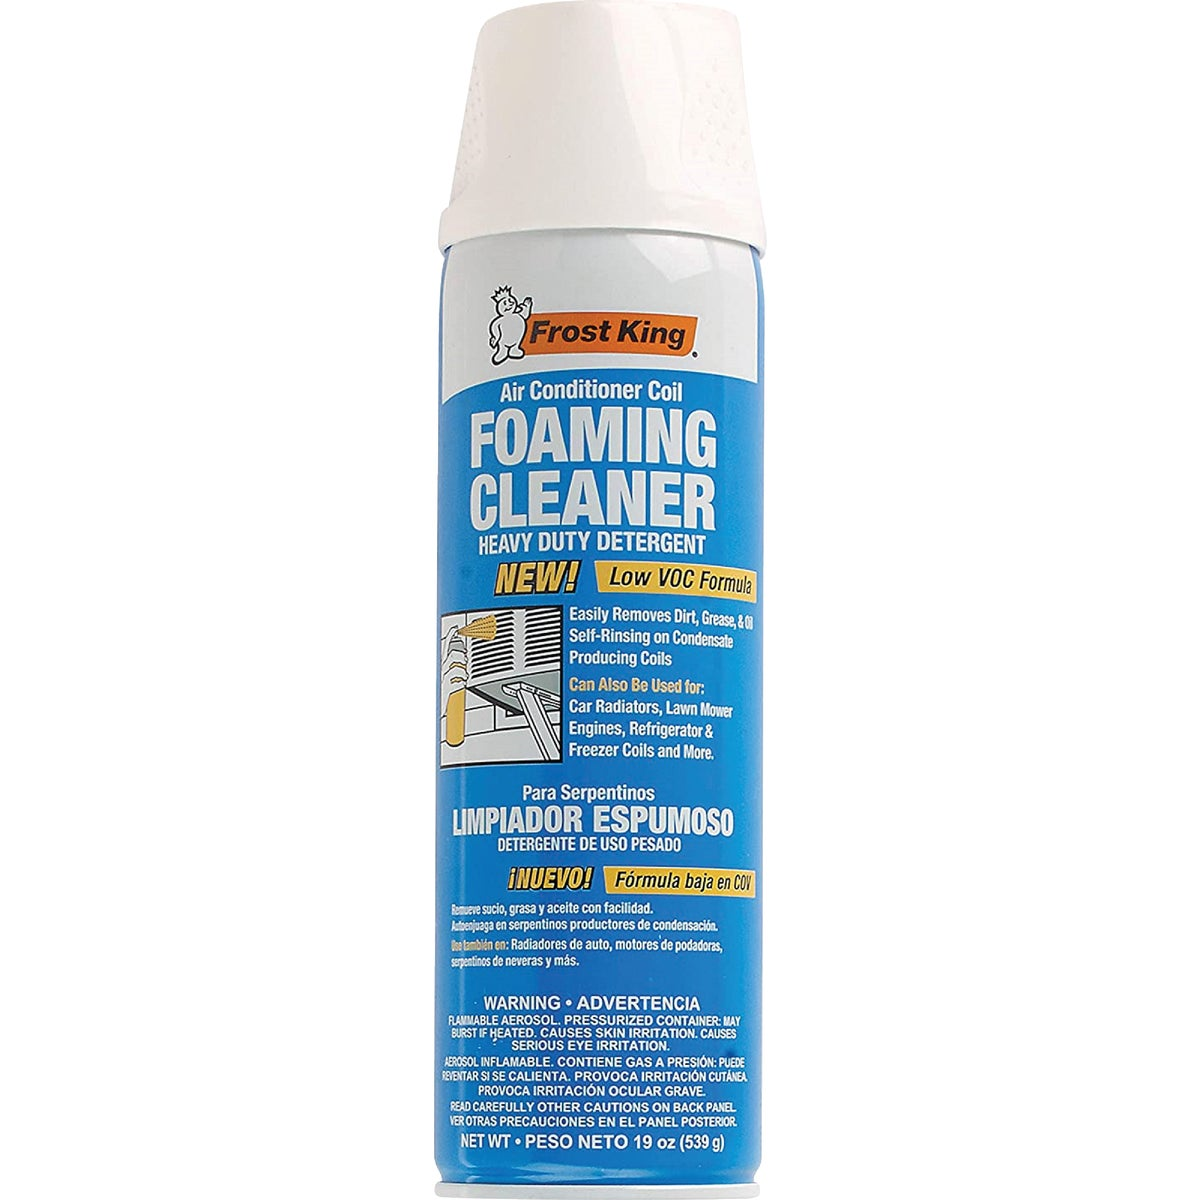 Air Conditioner Coil Foaming Cleaner